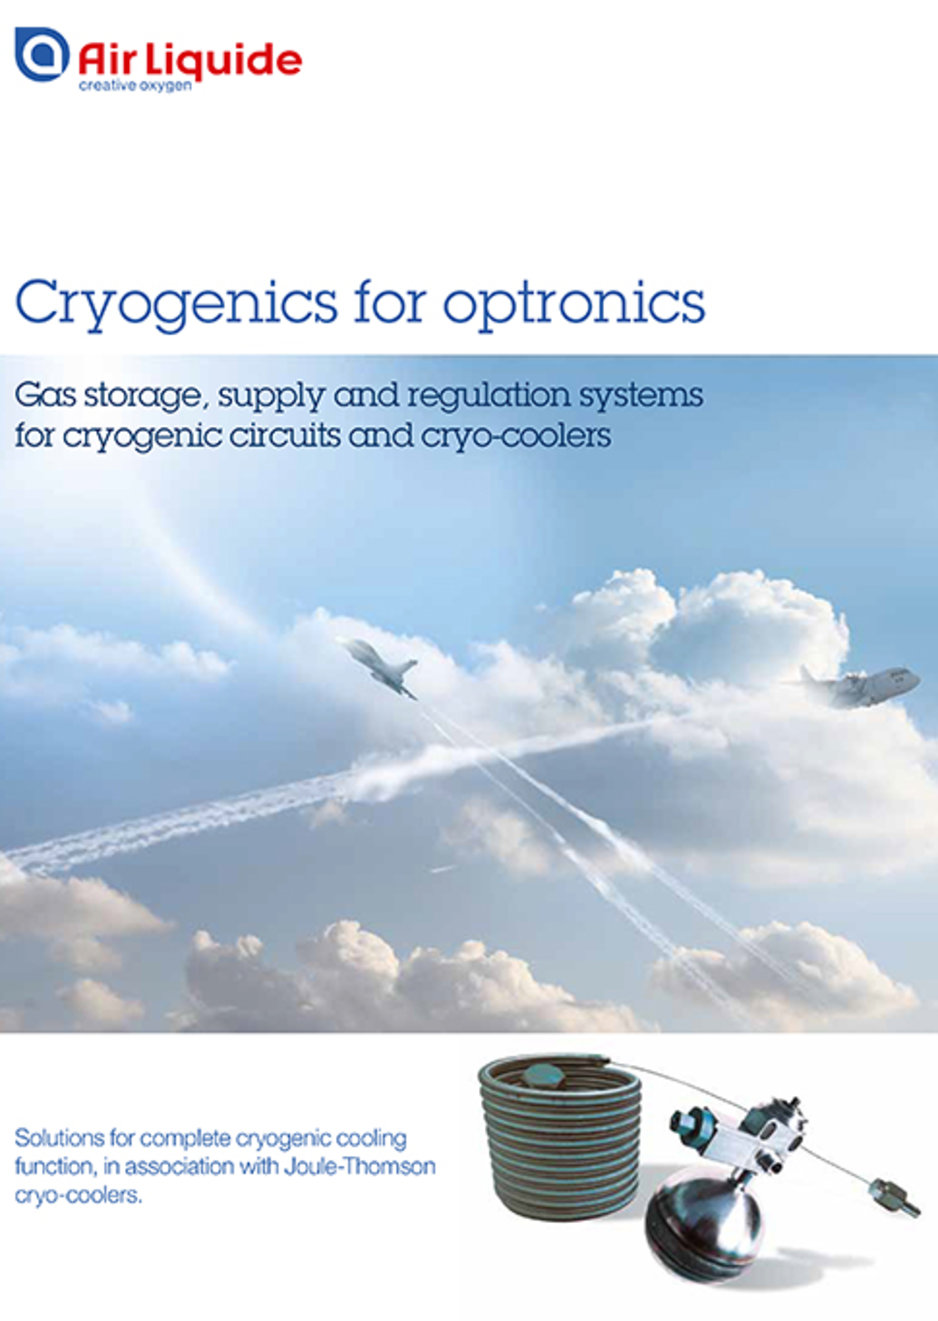 cryogenics for oprtonics brochure cover